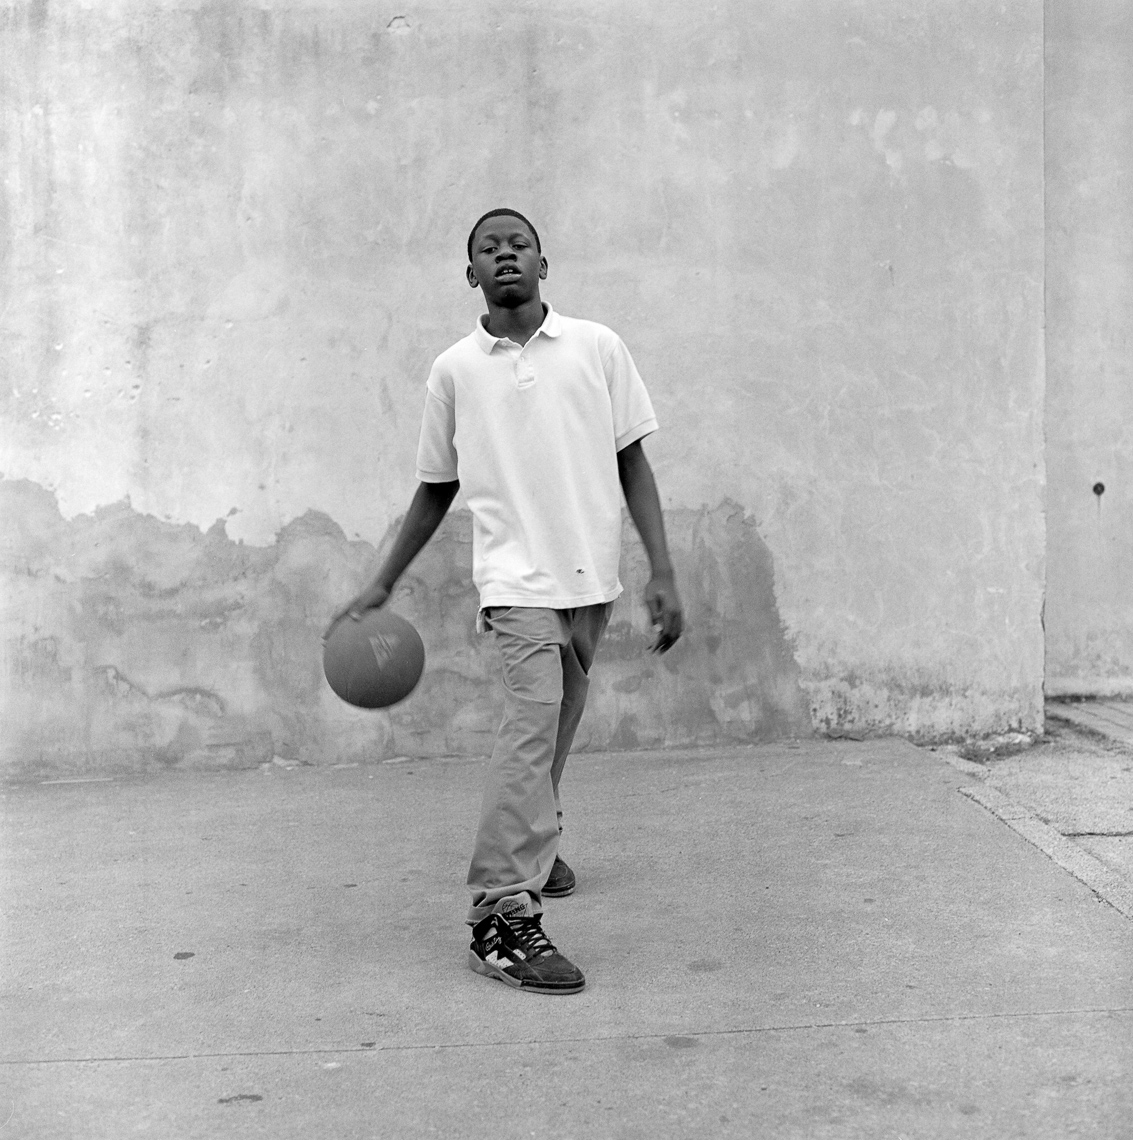 black-white-street-kid-wall-basketball